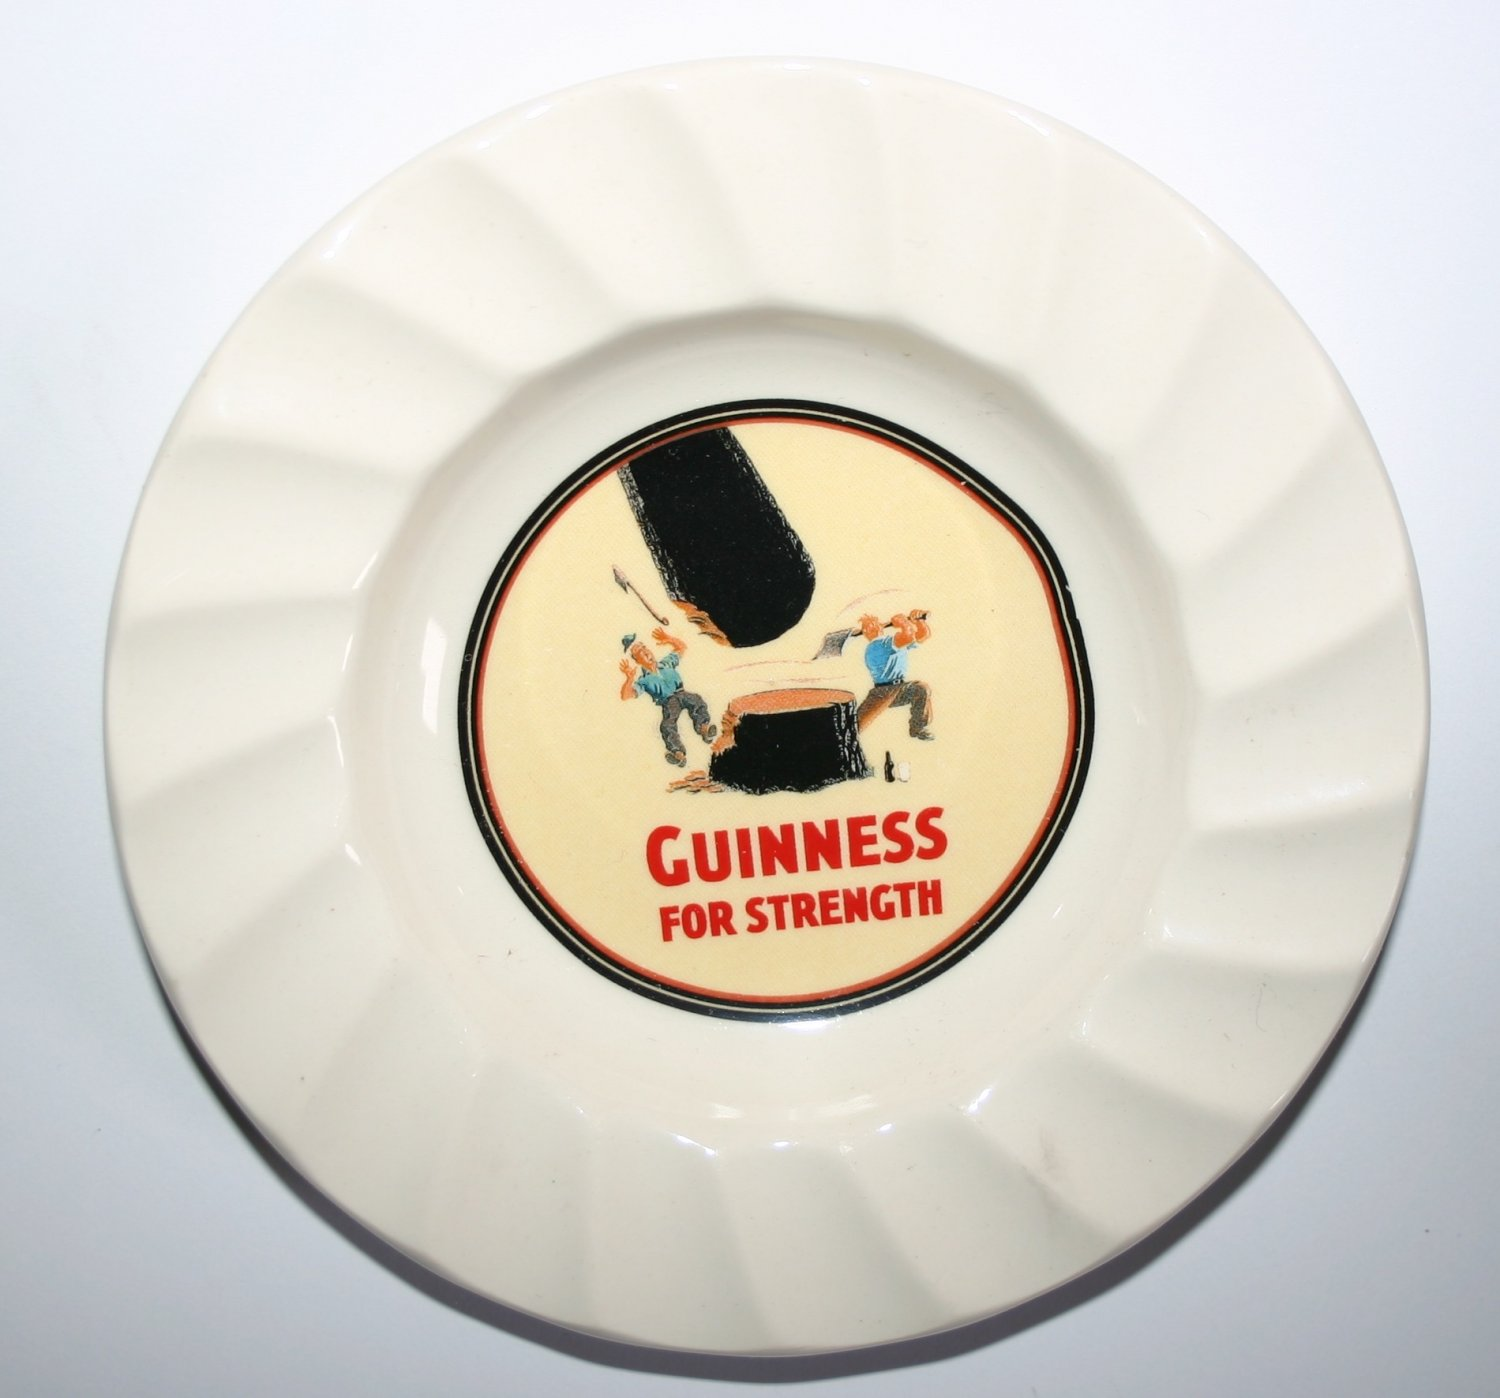 Guinness For Strength Dish By Carrigaline Pottery Ireland Vintage Collectable